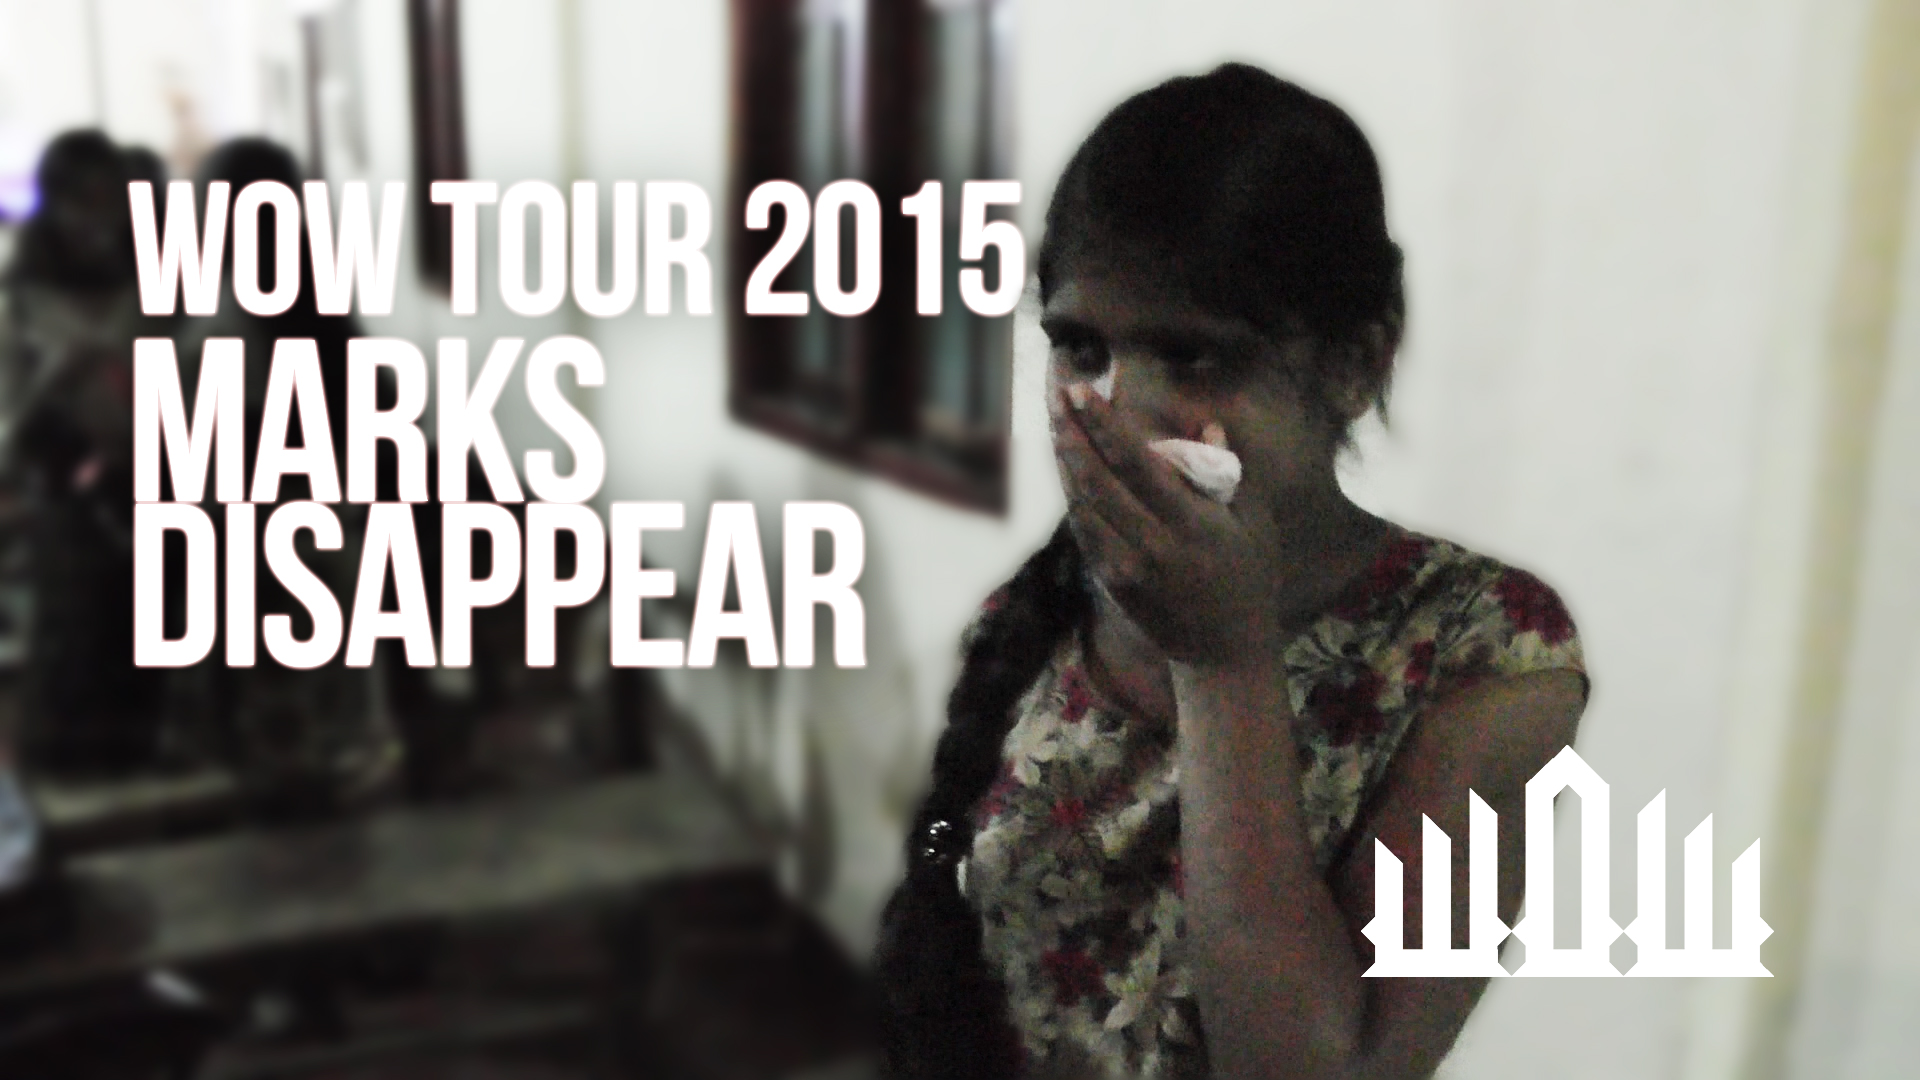 BIRTHMARKS DISAPPEAR – WOW TOUR 2015 – KIRBY DE LANEROLLE